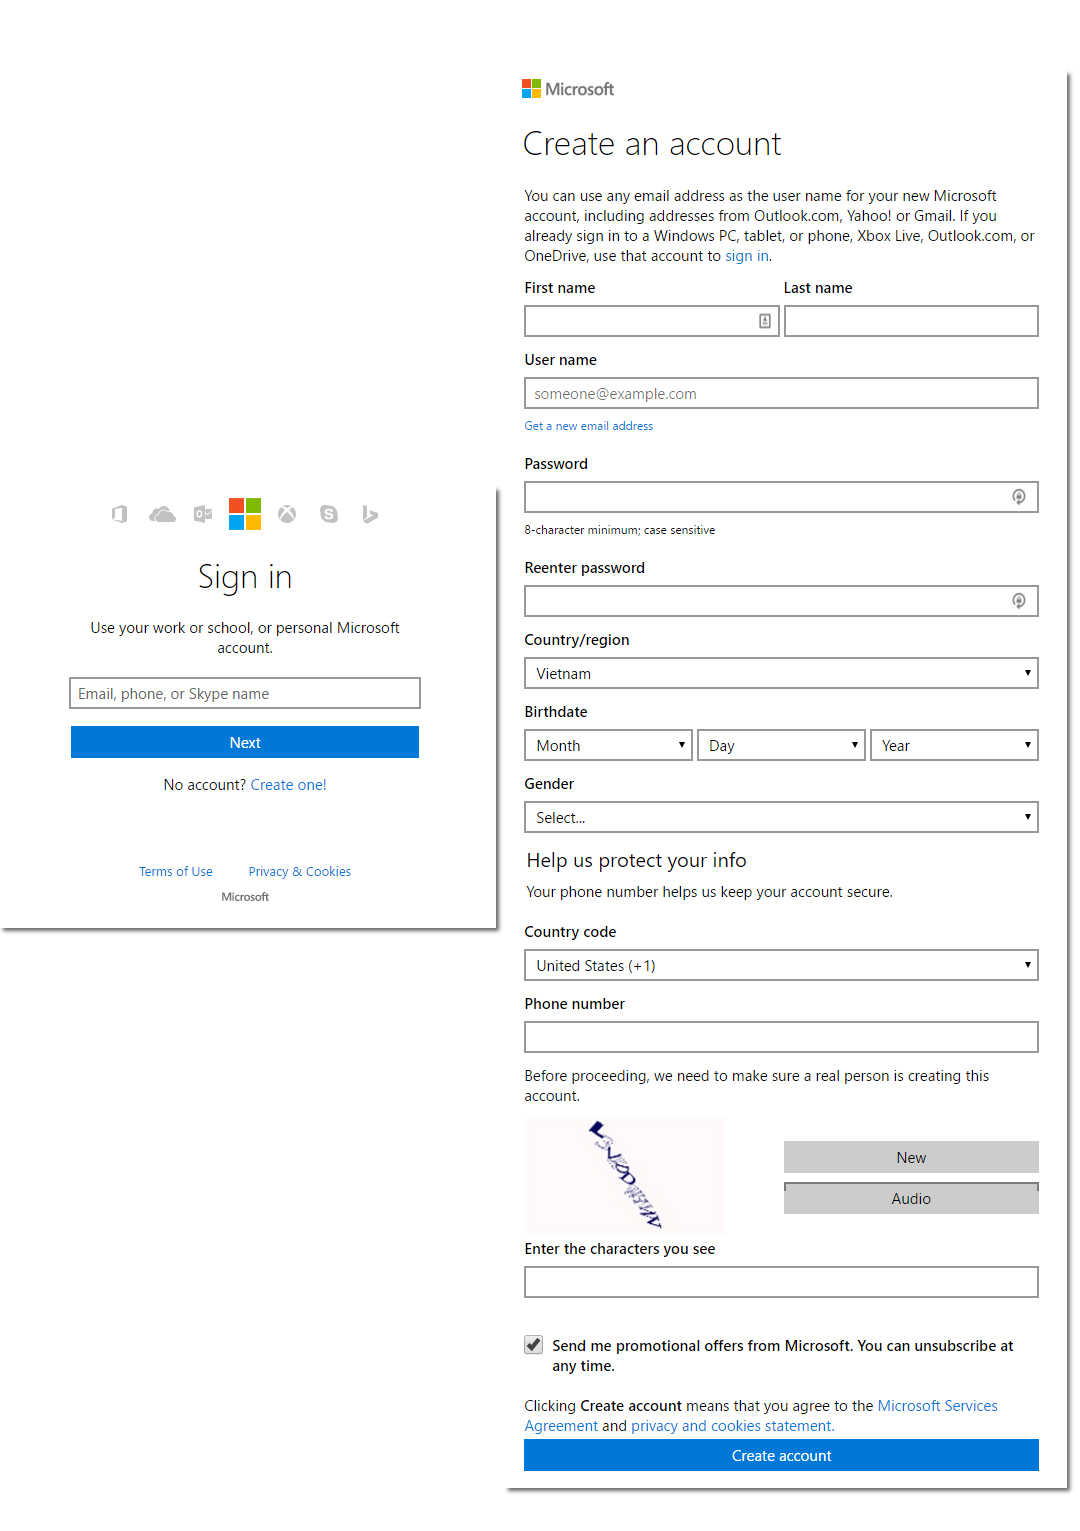 sign-in or login account